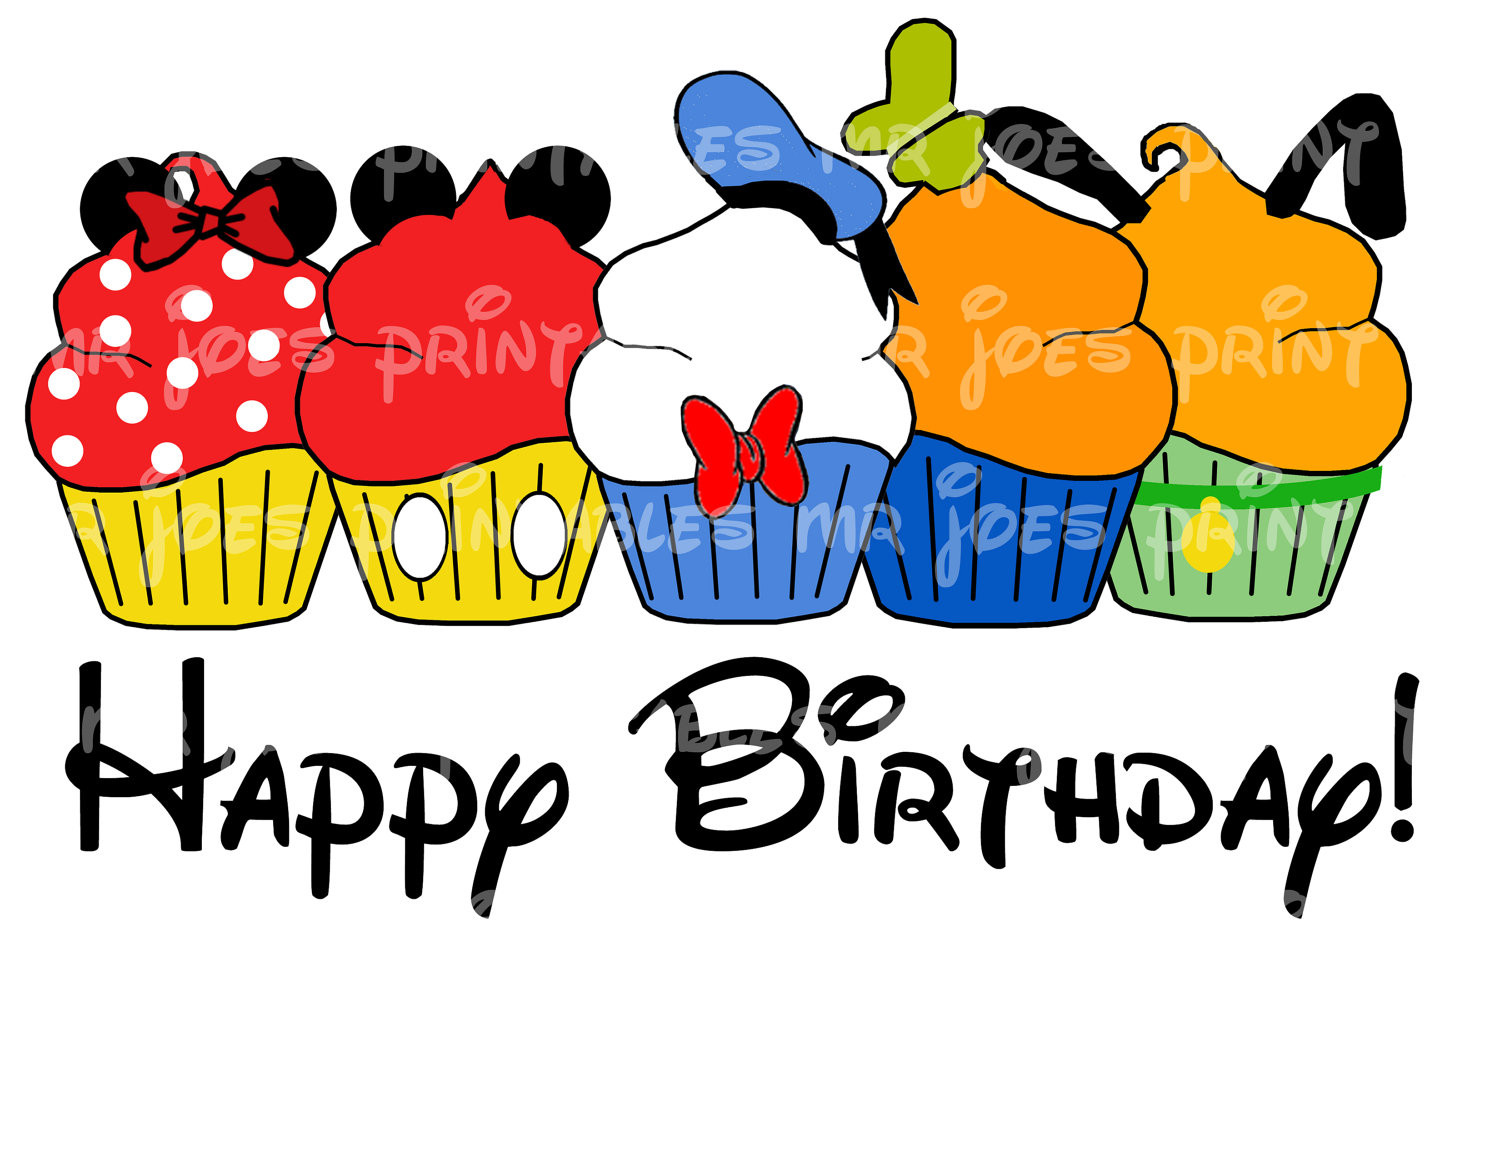 Best ideas about Disney Birthday Wishes . Save or Pin 301 Moved Permanently Now.